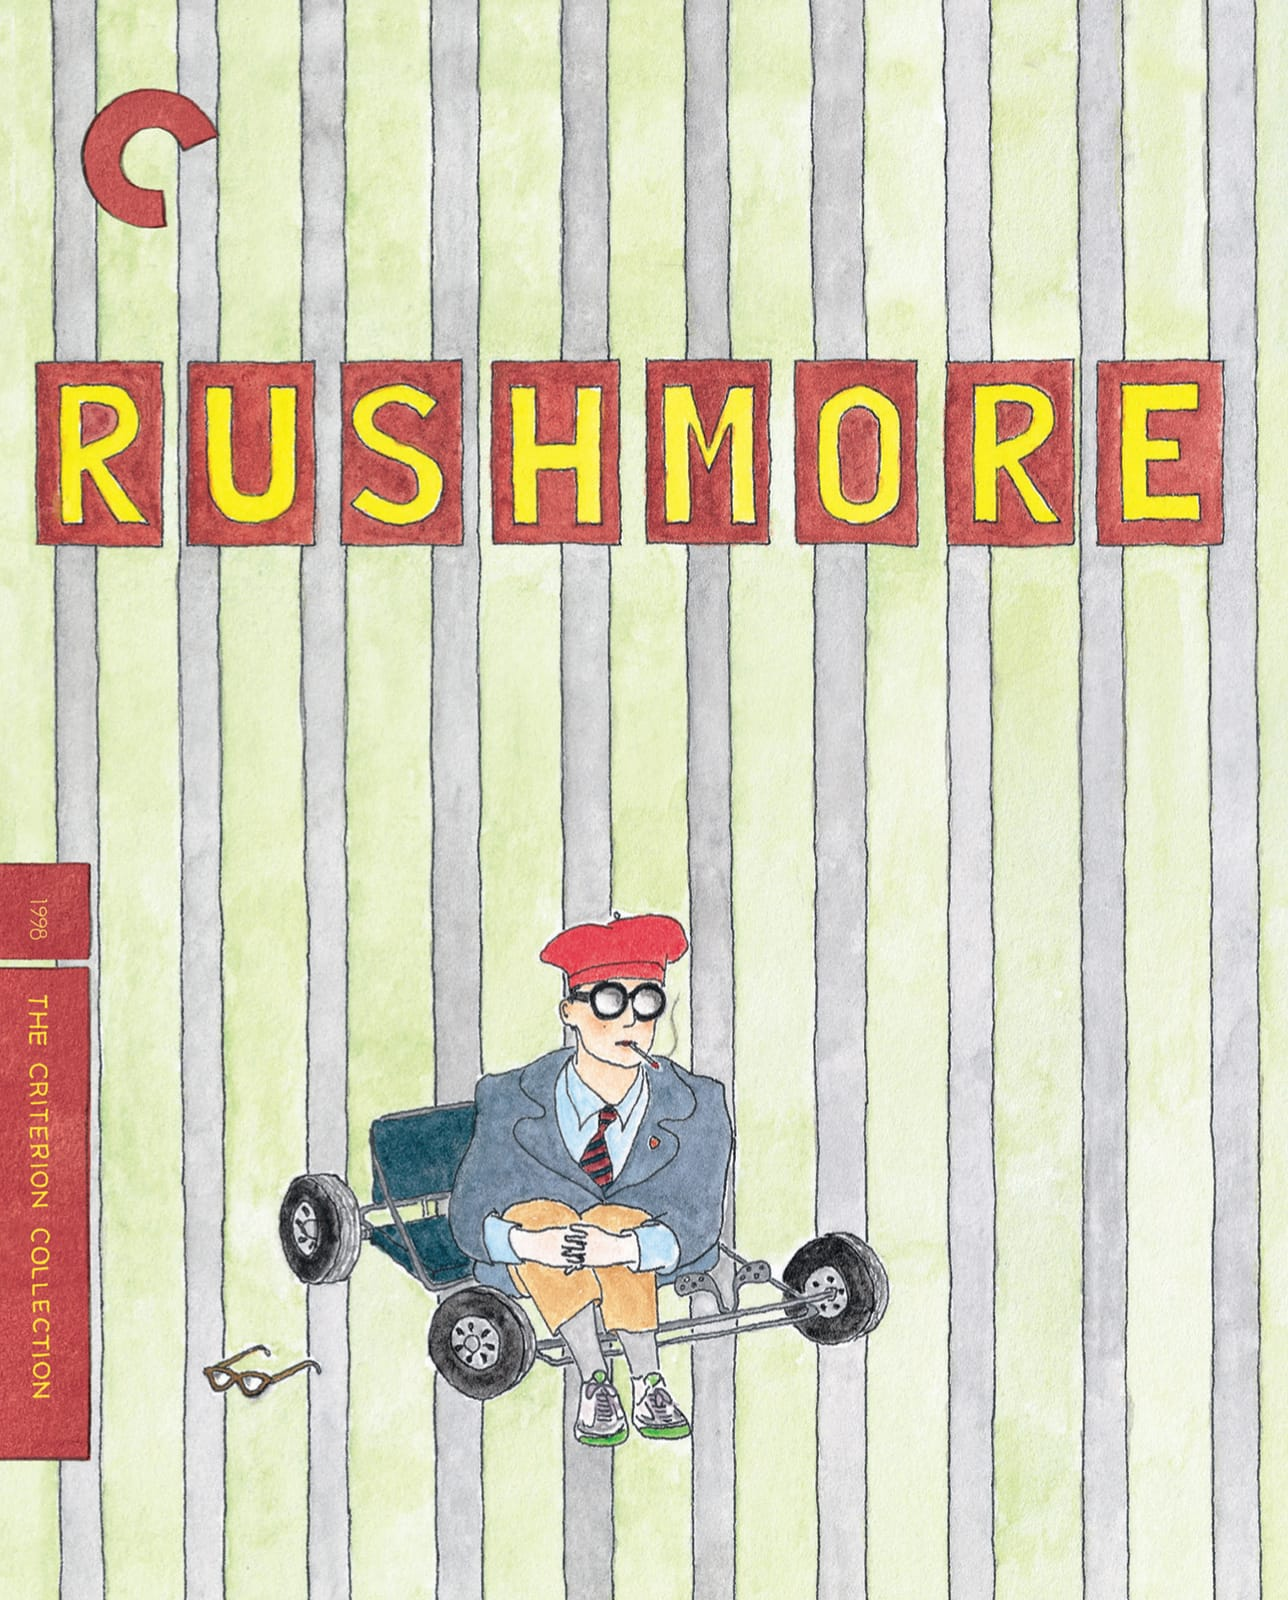 Rushmore 1998 The Criterion Collection